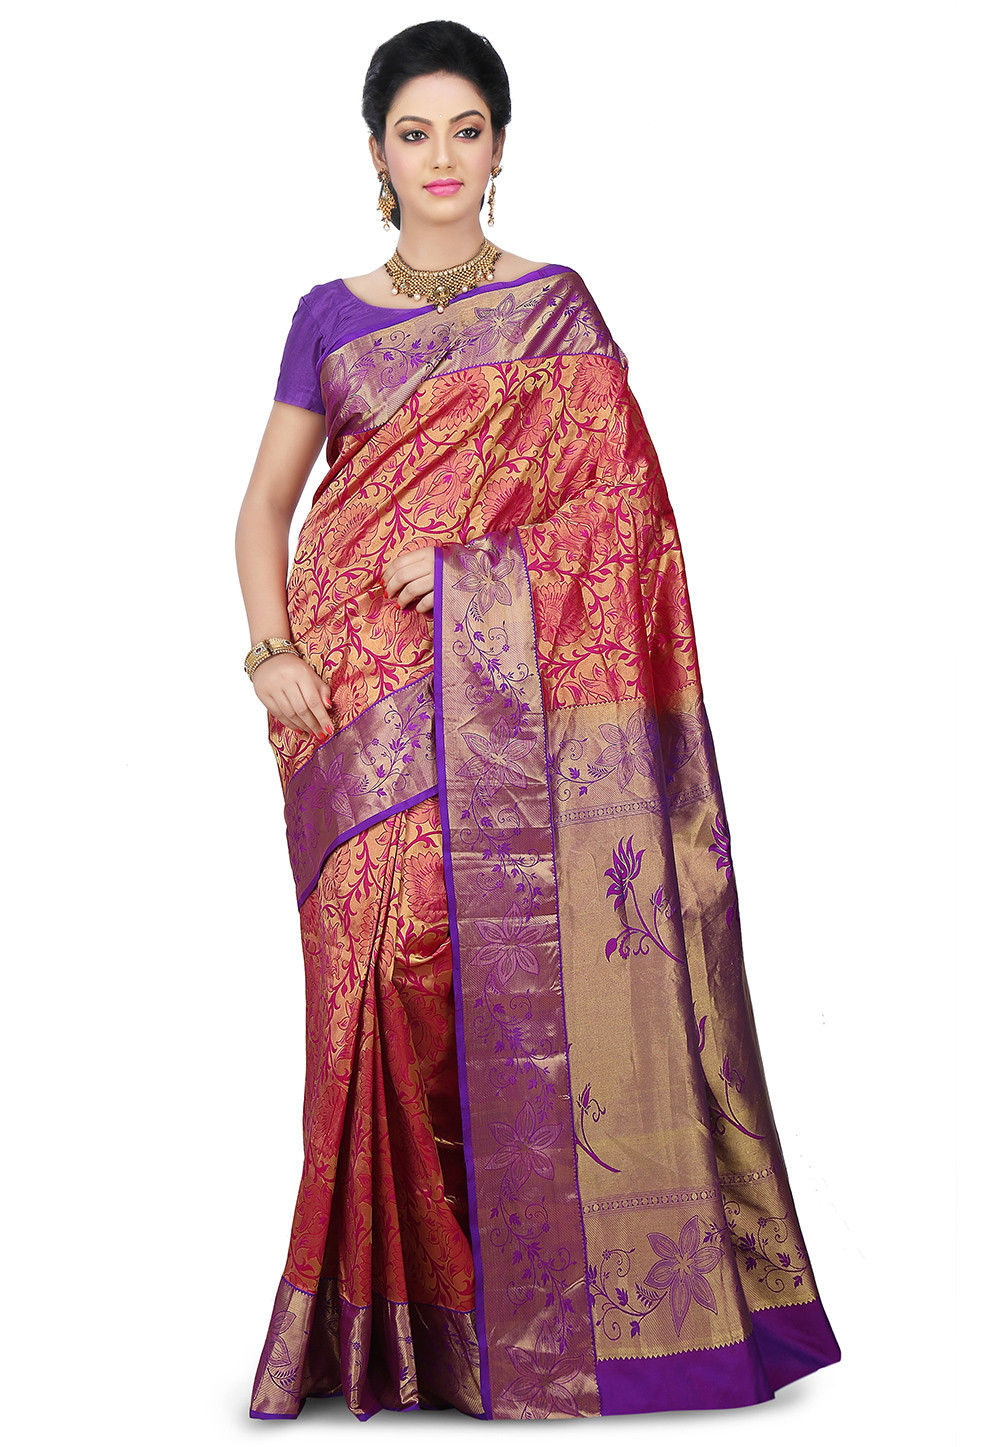 Kanchipuram Saree in Golden and Fuchsia